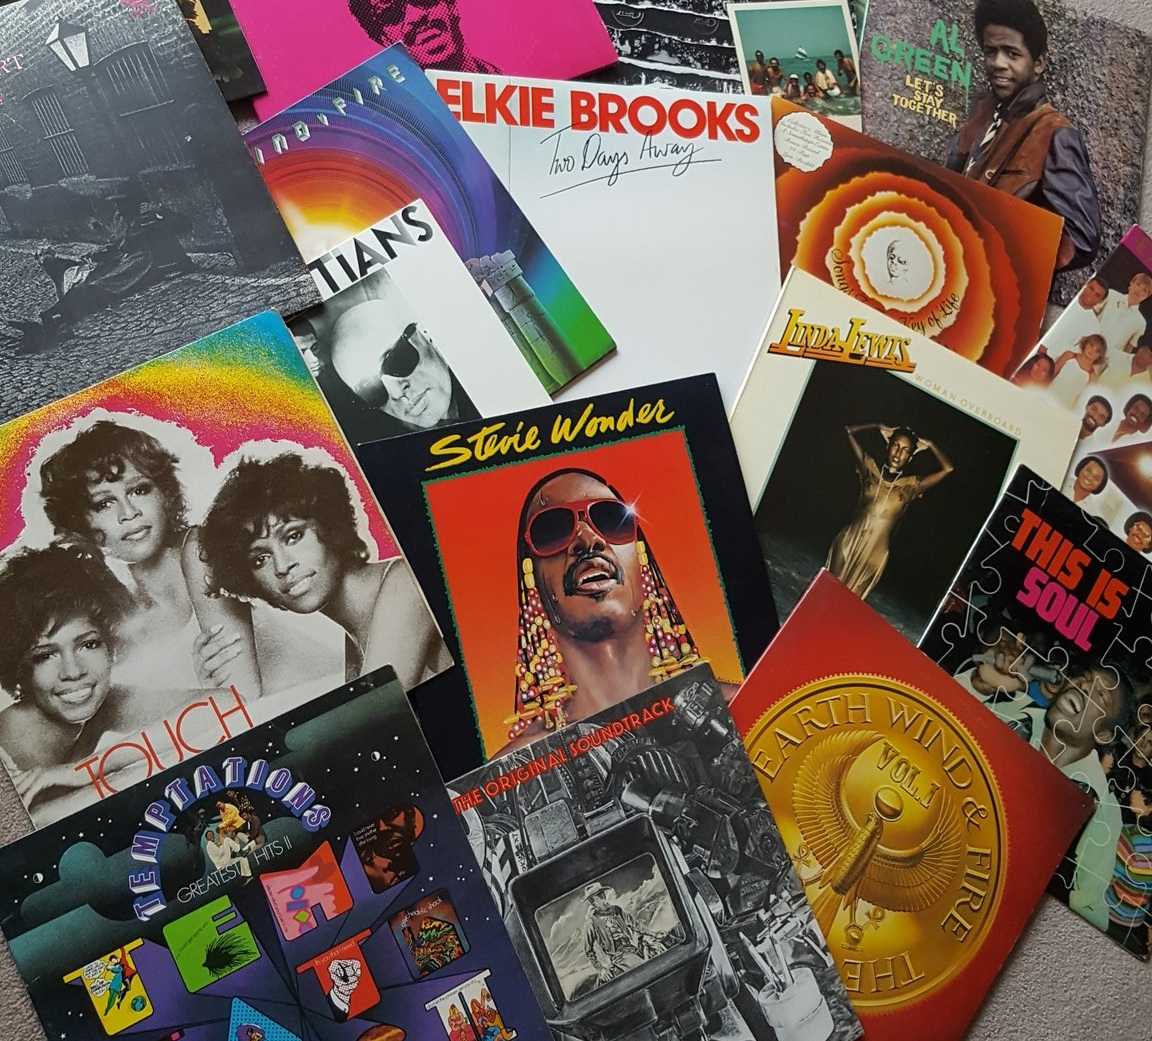 A collection of covers of LPs featuring Stevie Wonder, Earth Wind & Fire, Temptations and many more!